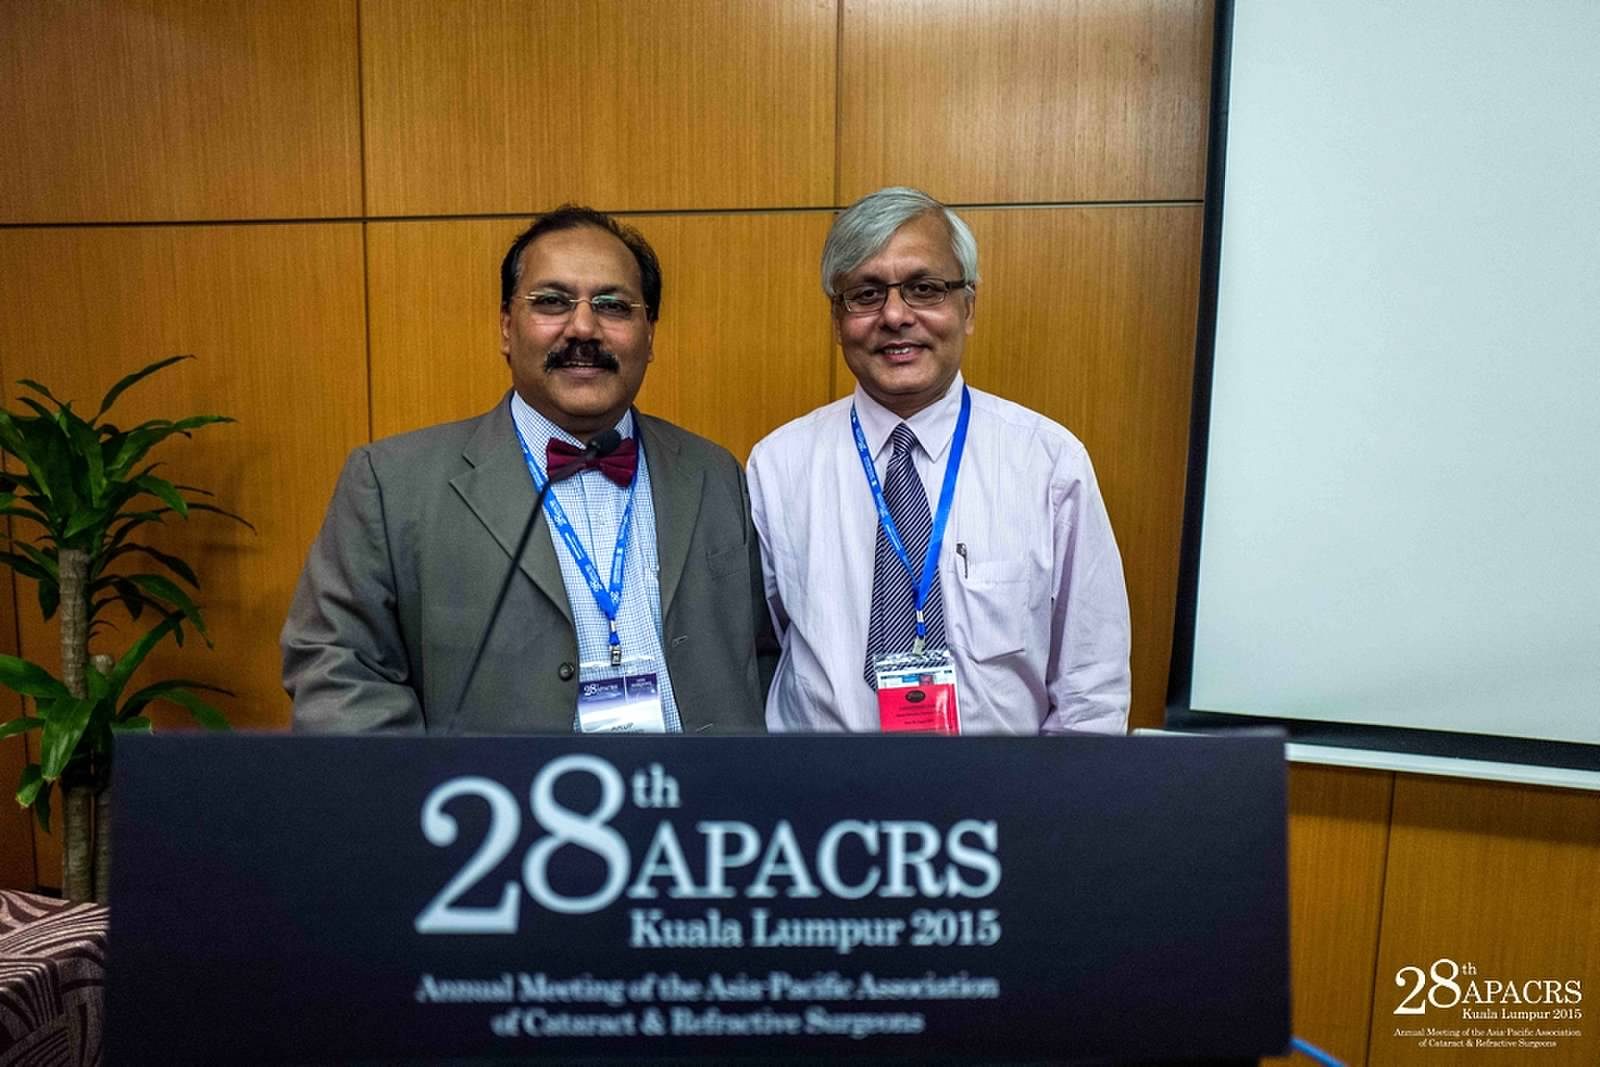 Dr Somdutt Prasad at the APACRS conference in Kuala Lumpur, Malaysia